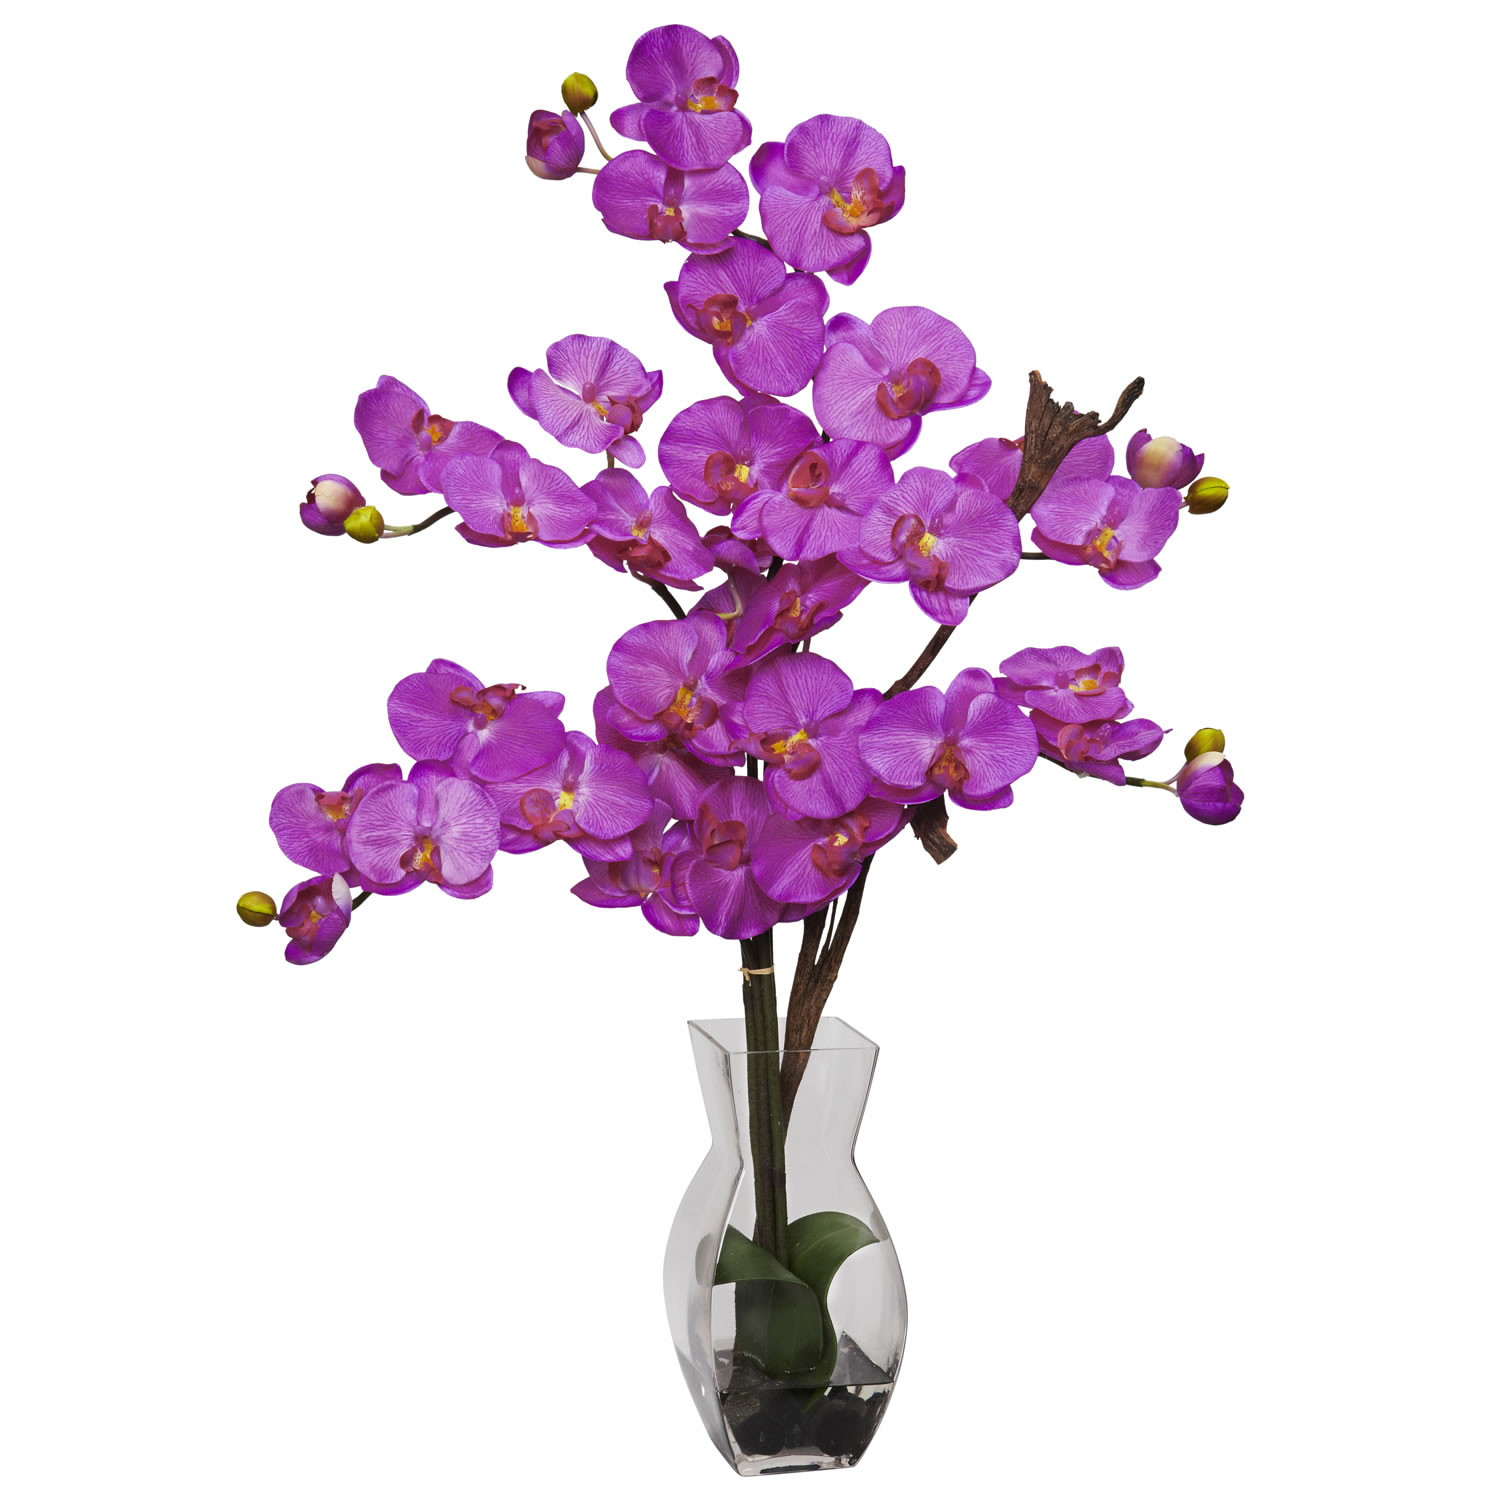 Phalaenopsis Wvase Silk Flower Arrangement Silk Specialties